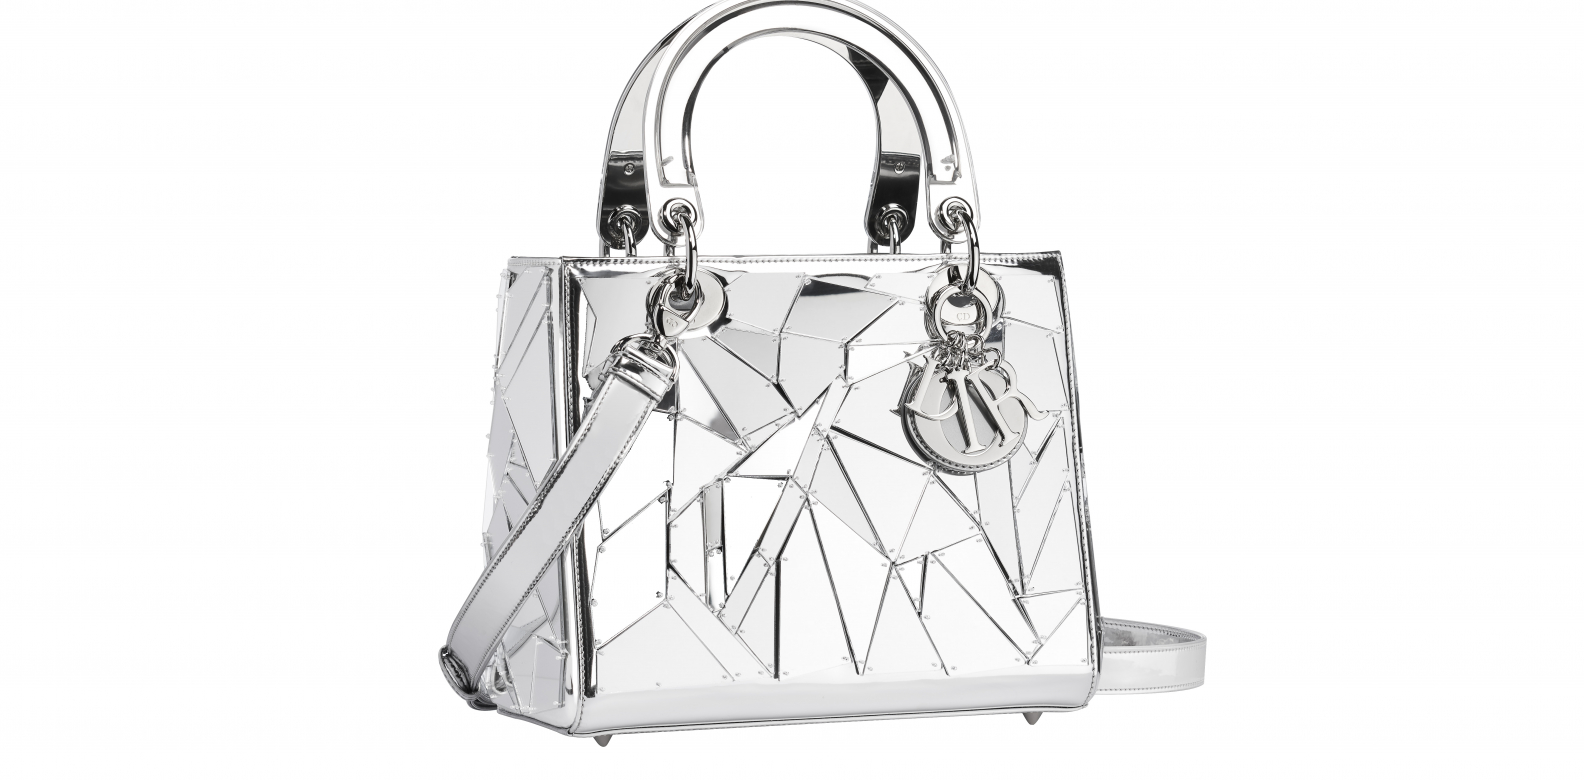 The Lady Dior bag by Lee Bul - Dior Lady Art #2. Photo courtesy of Frederic Leclere